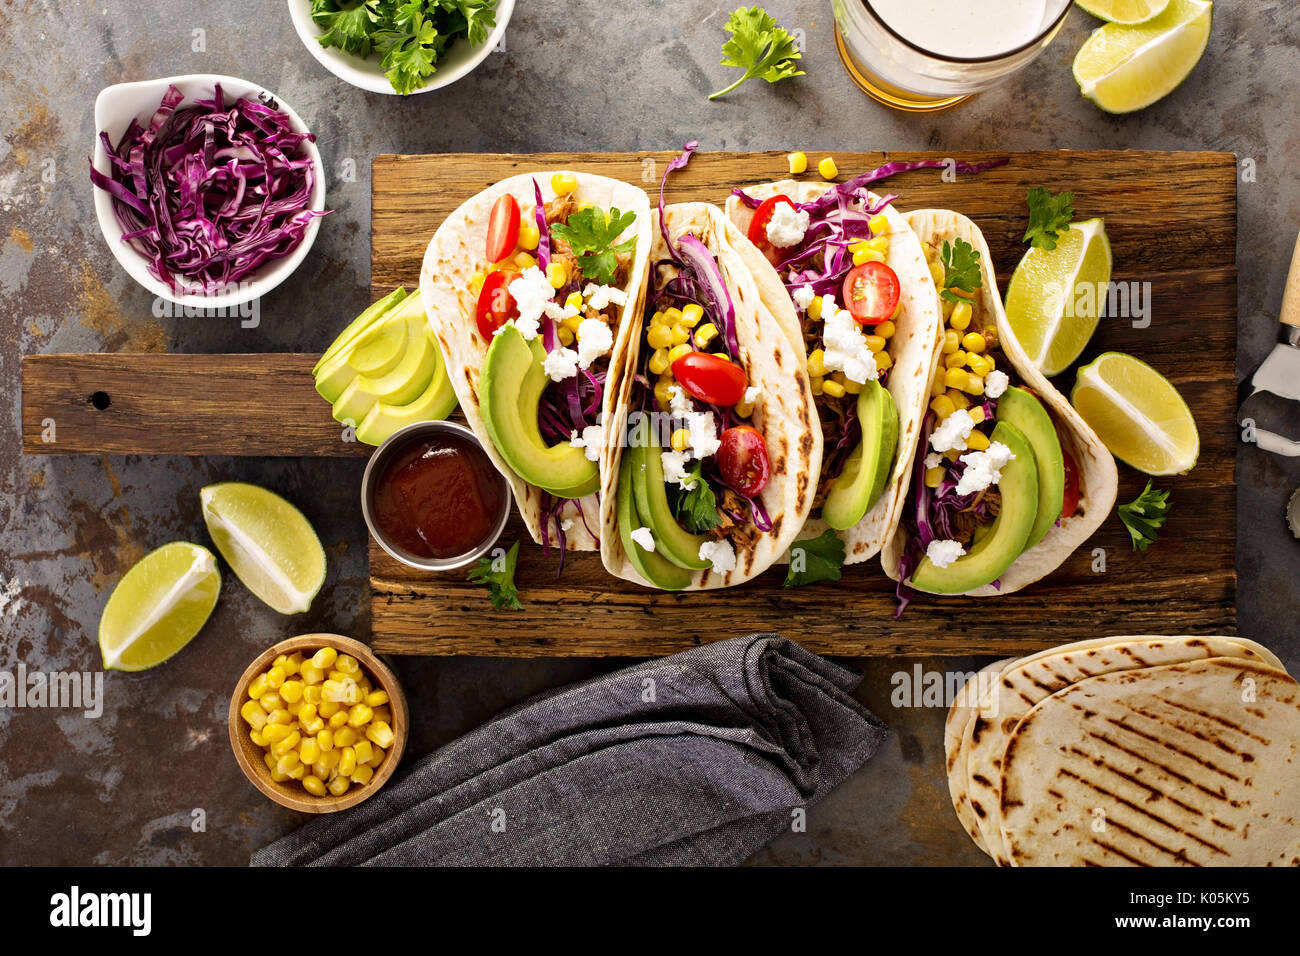 Pulled pork tacos with red cabbage and avocados - Stock Image